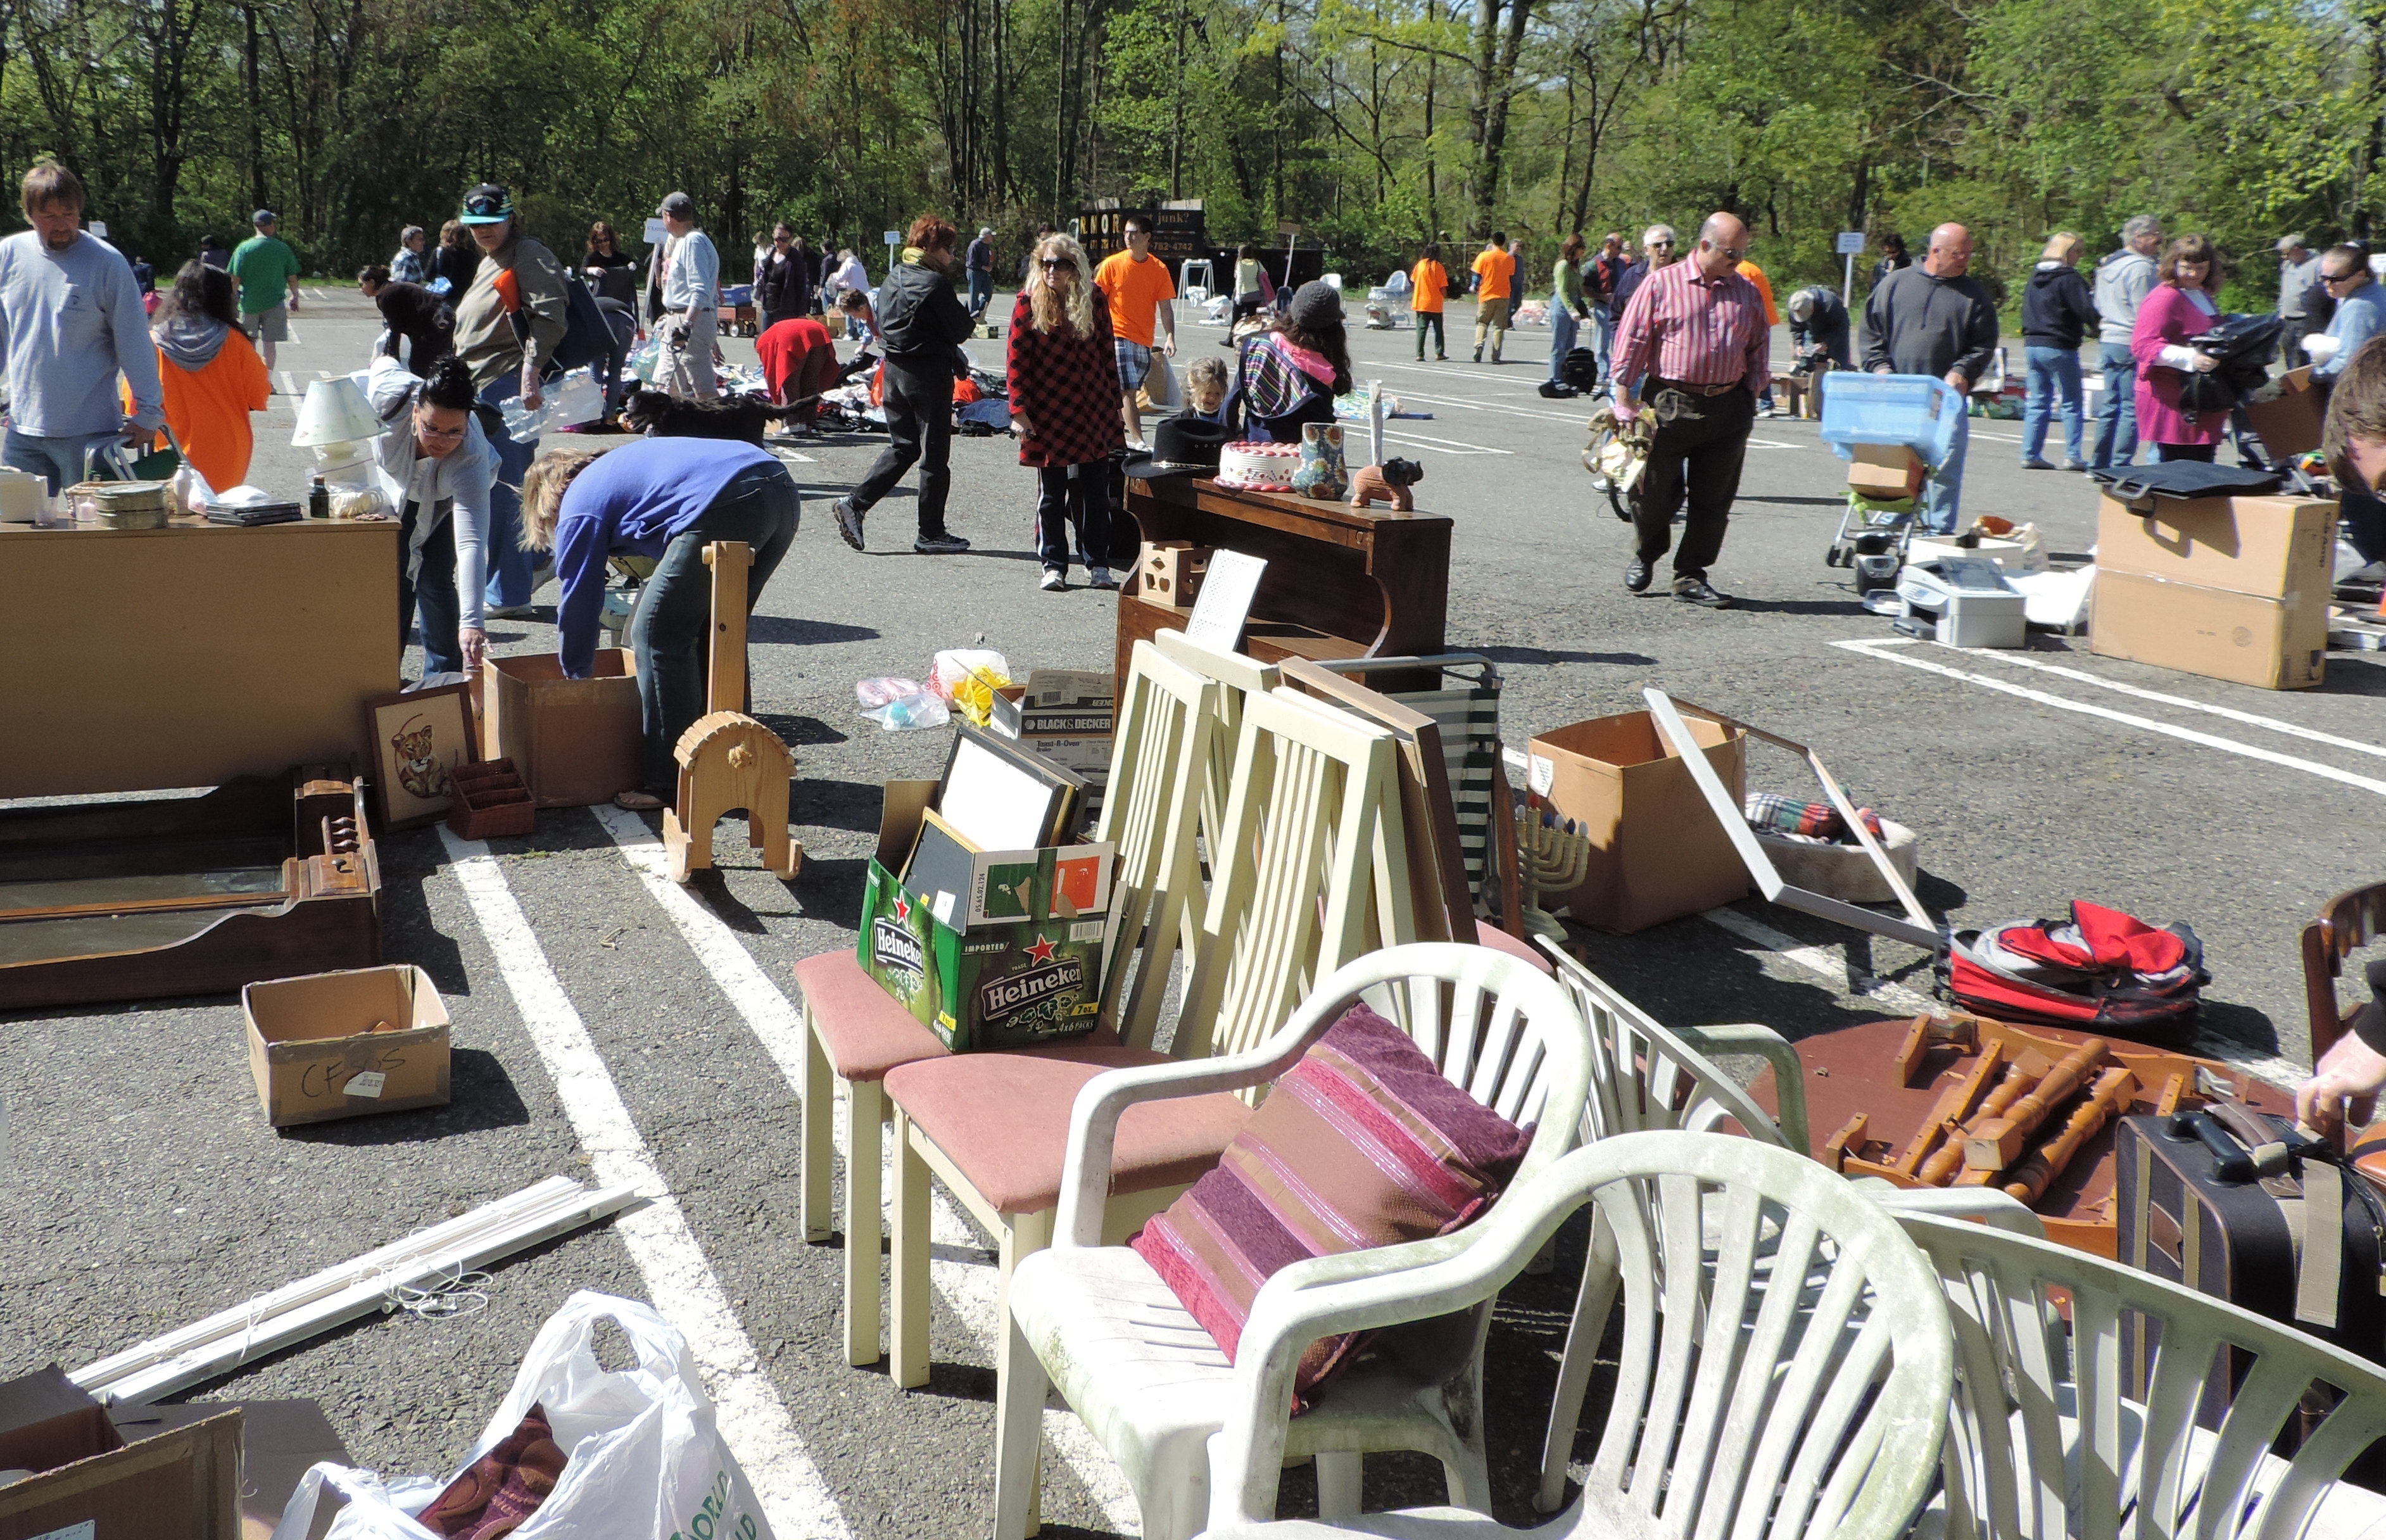 Trade Castoffs for 'Finds' at Freecycling Day, Oct. 25